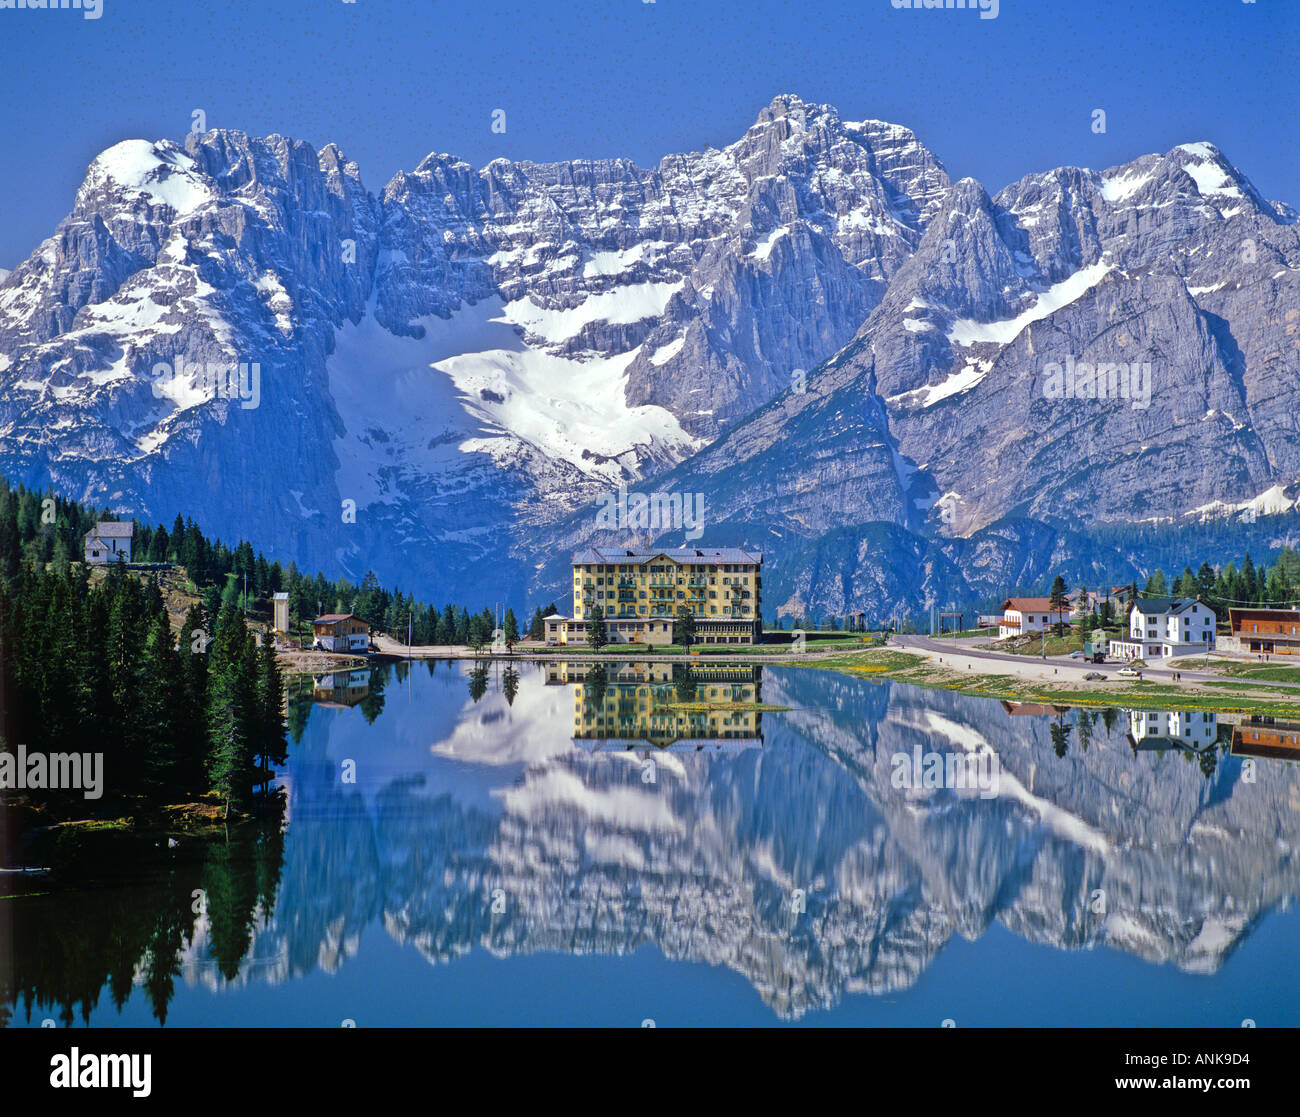 le lac de misurina et montagnes enneig es cortina d 39 ampezzo dolomites italie du nord banque d. Black Bedroom Furniture Sets. Home Design Ideas